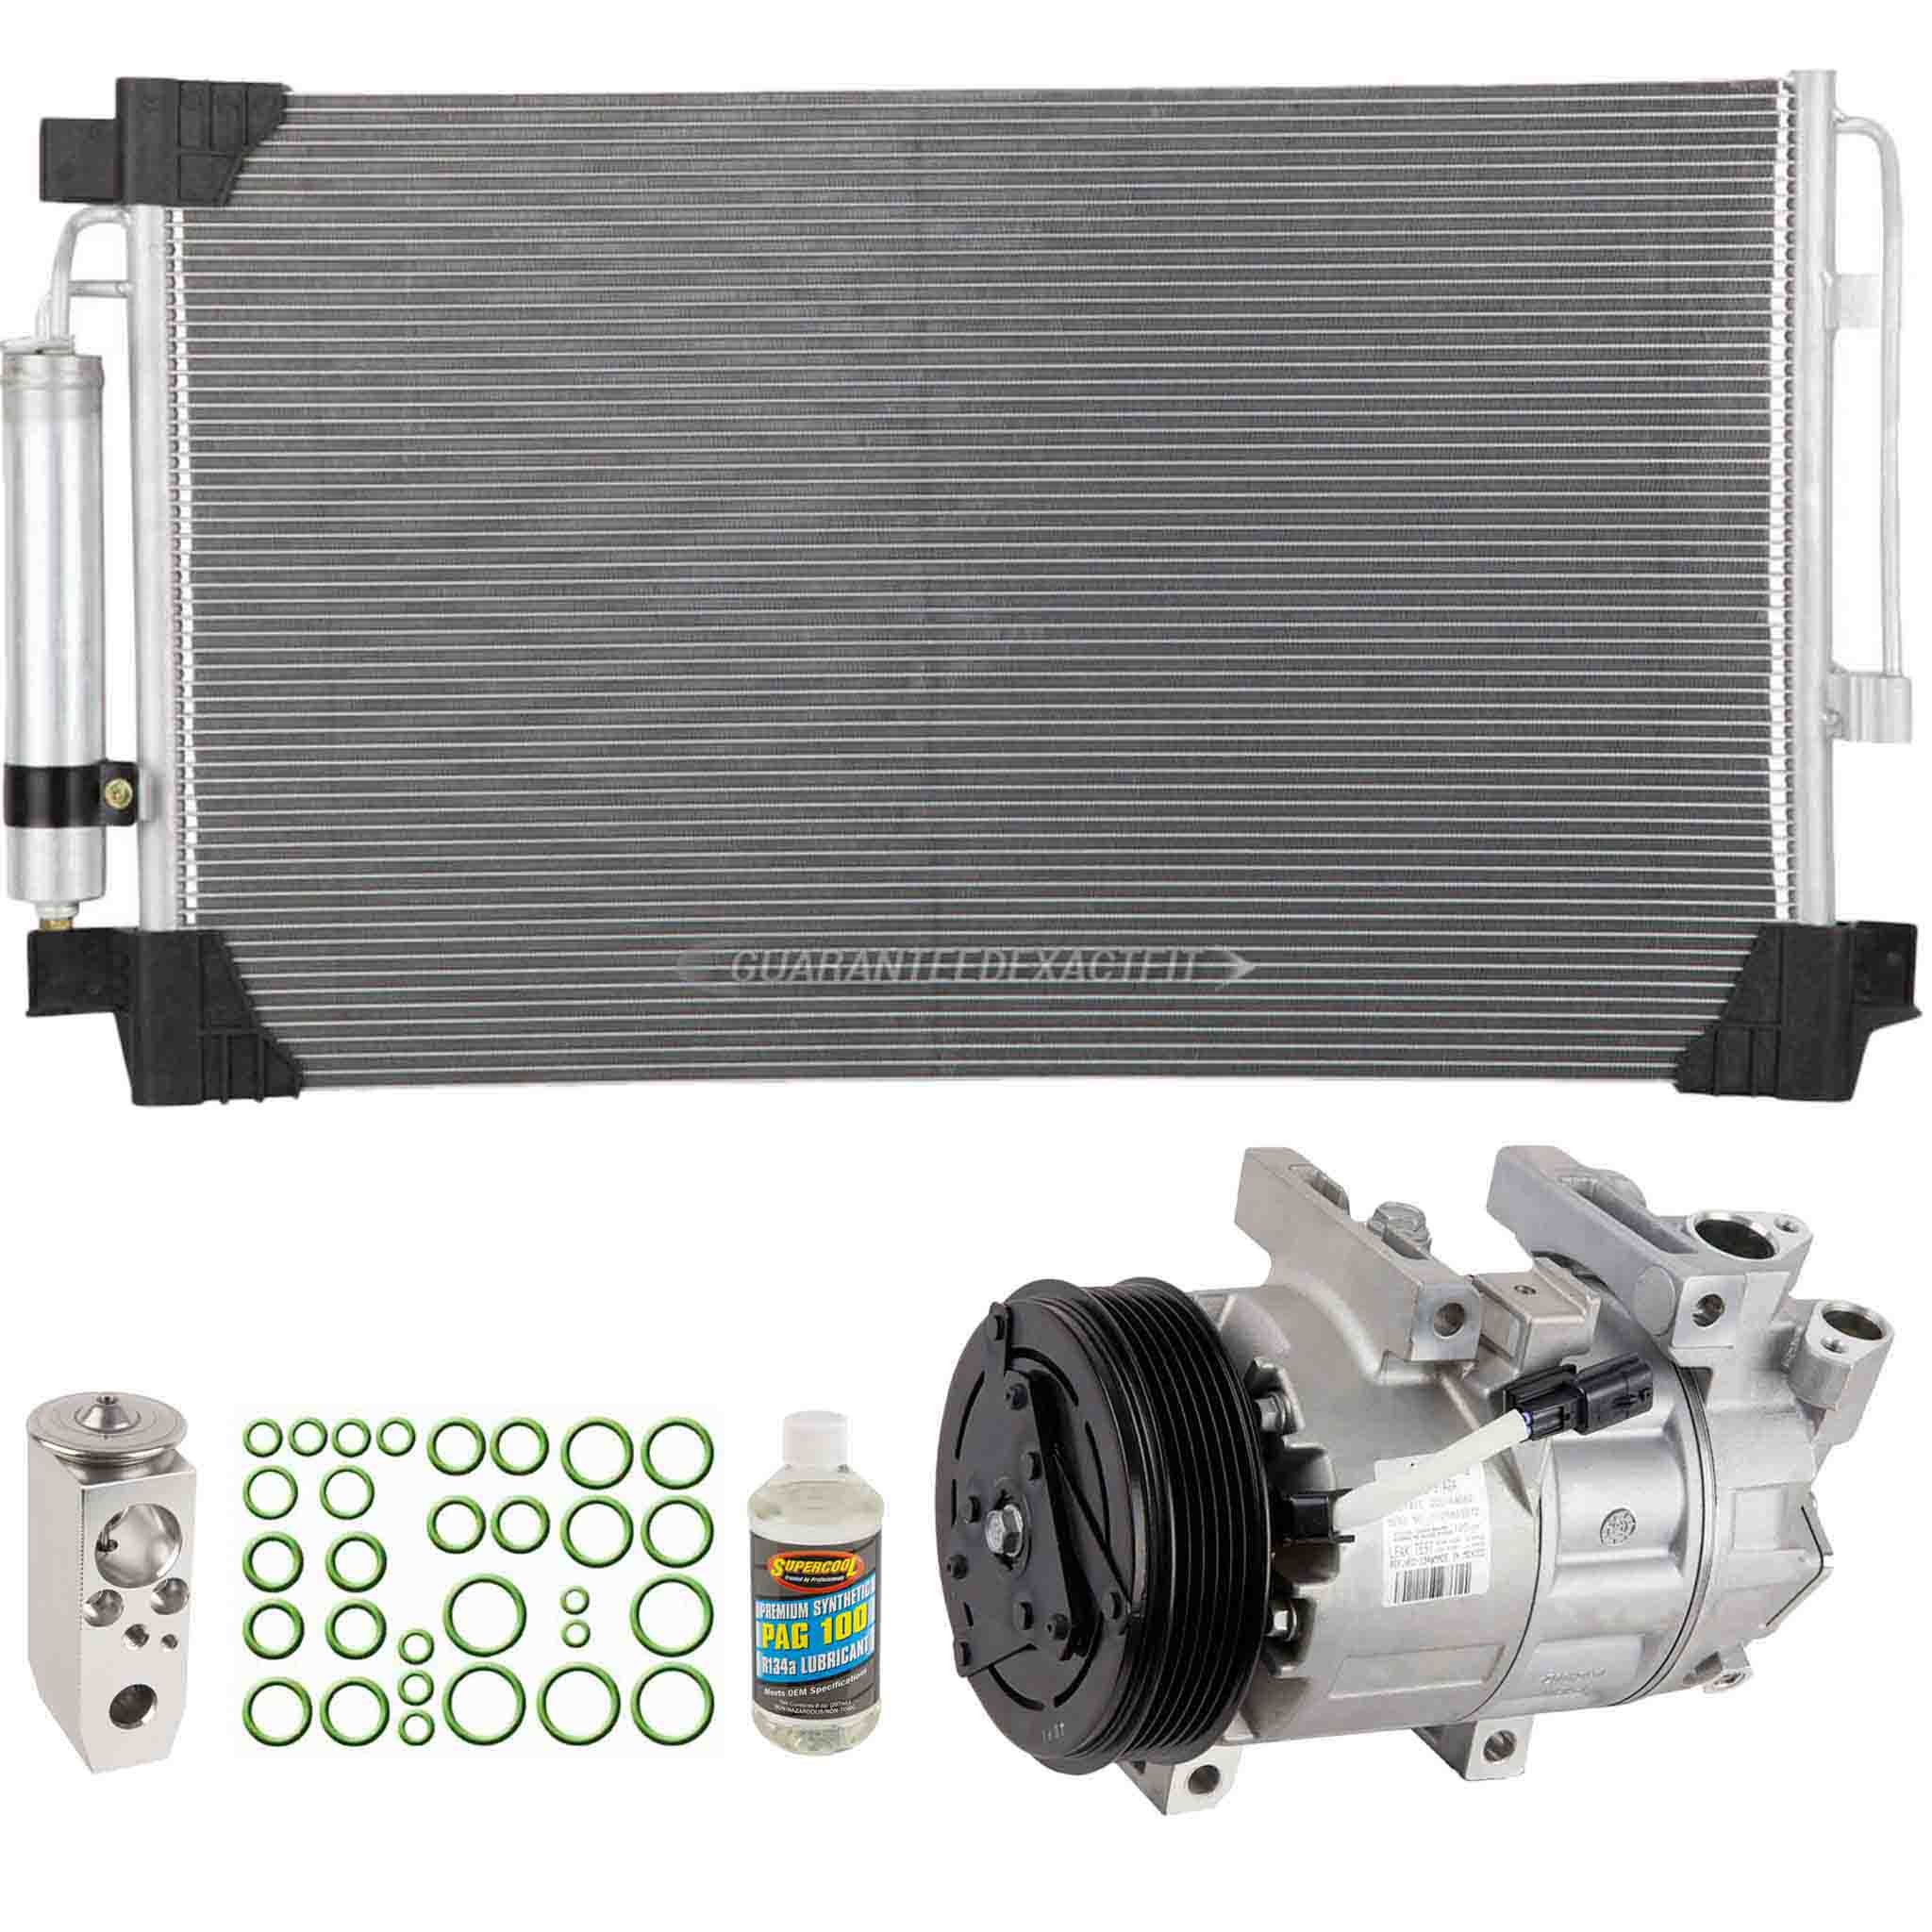 BuyAutoParts 61-94117R6 A/C Compressor and Components Kit